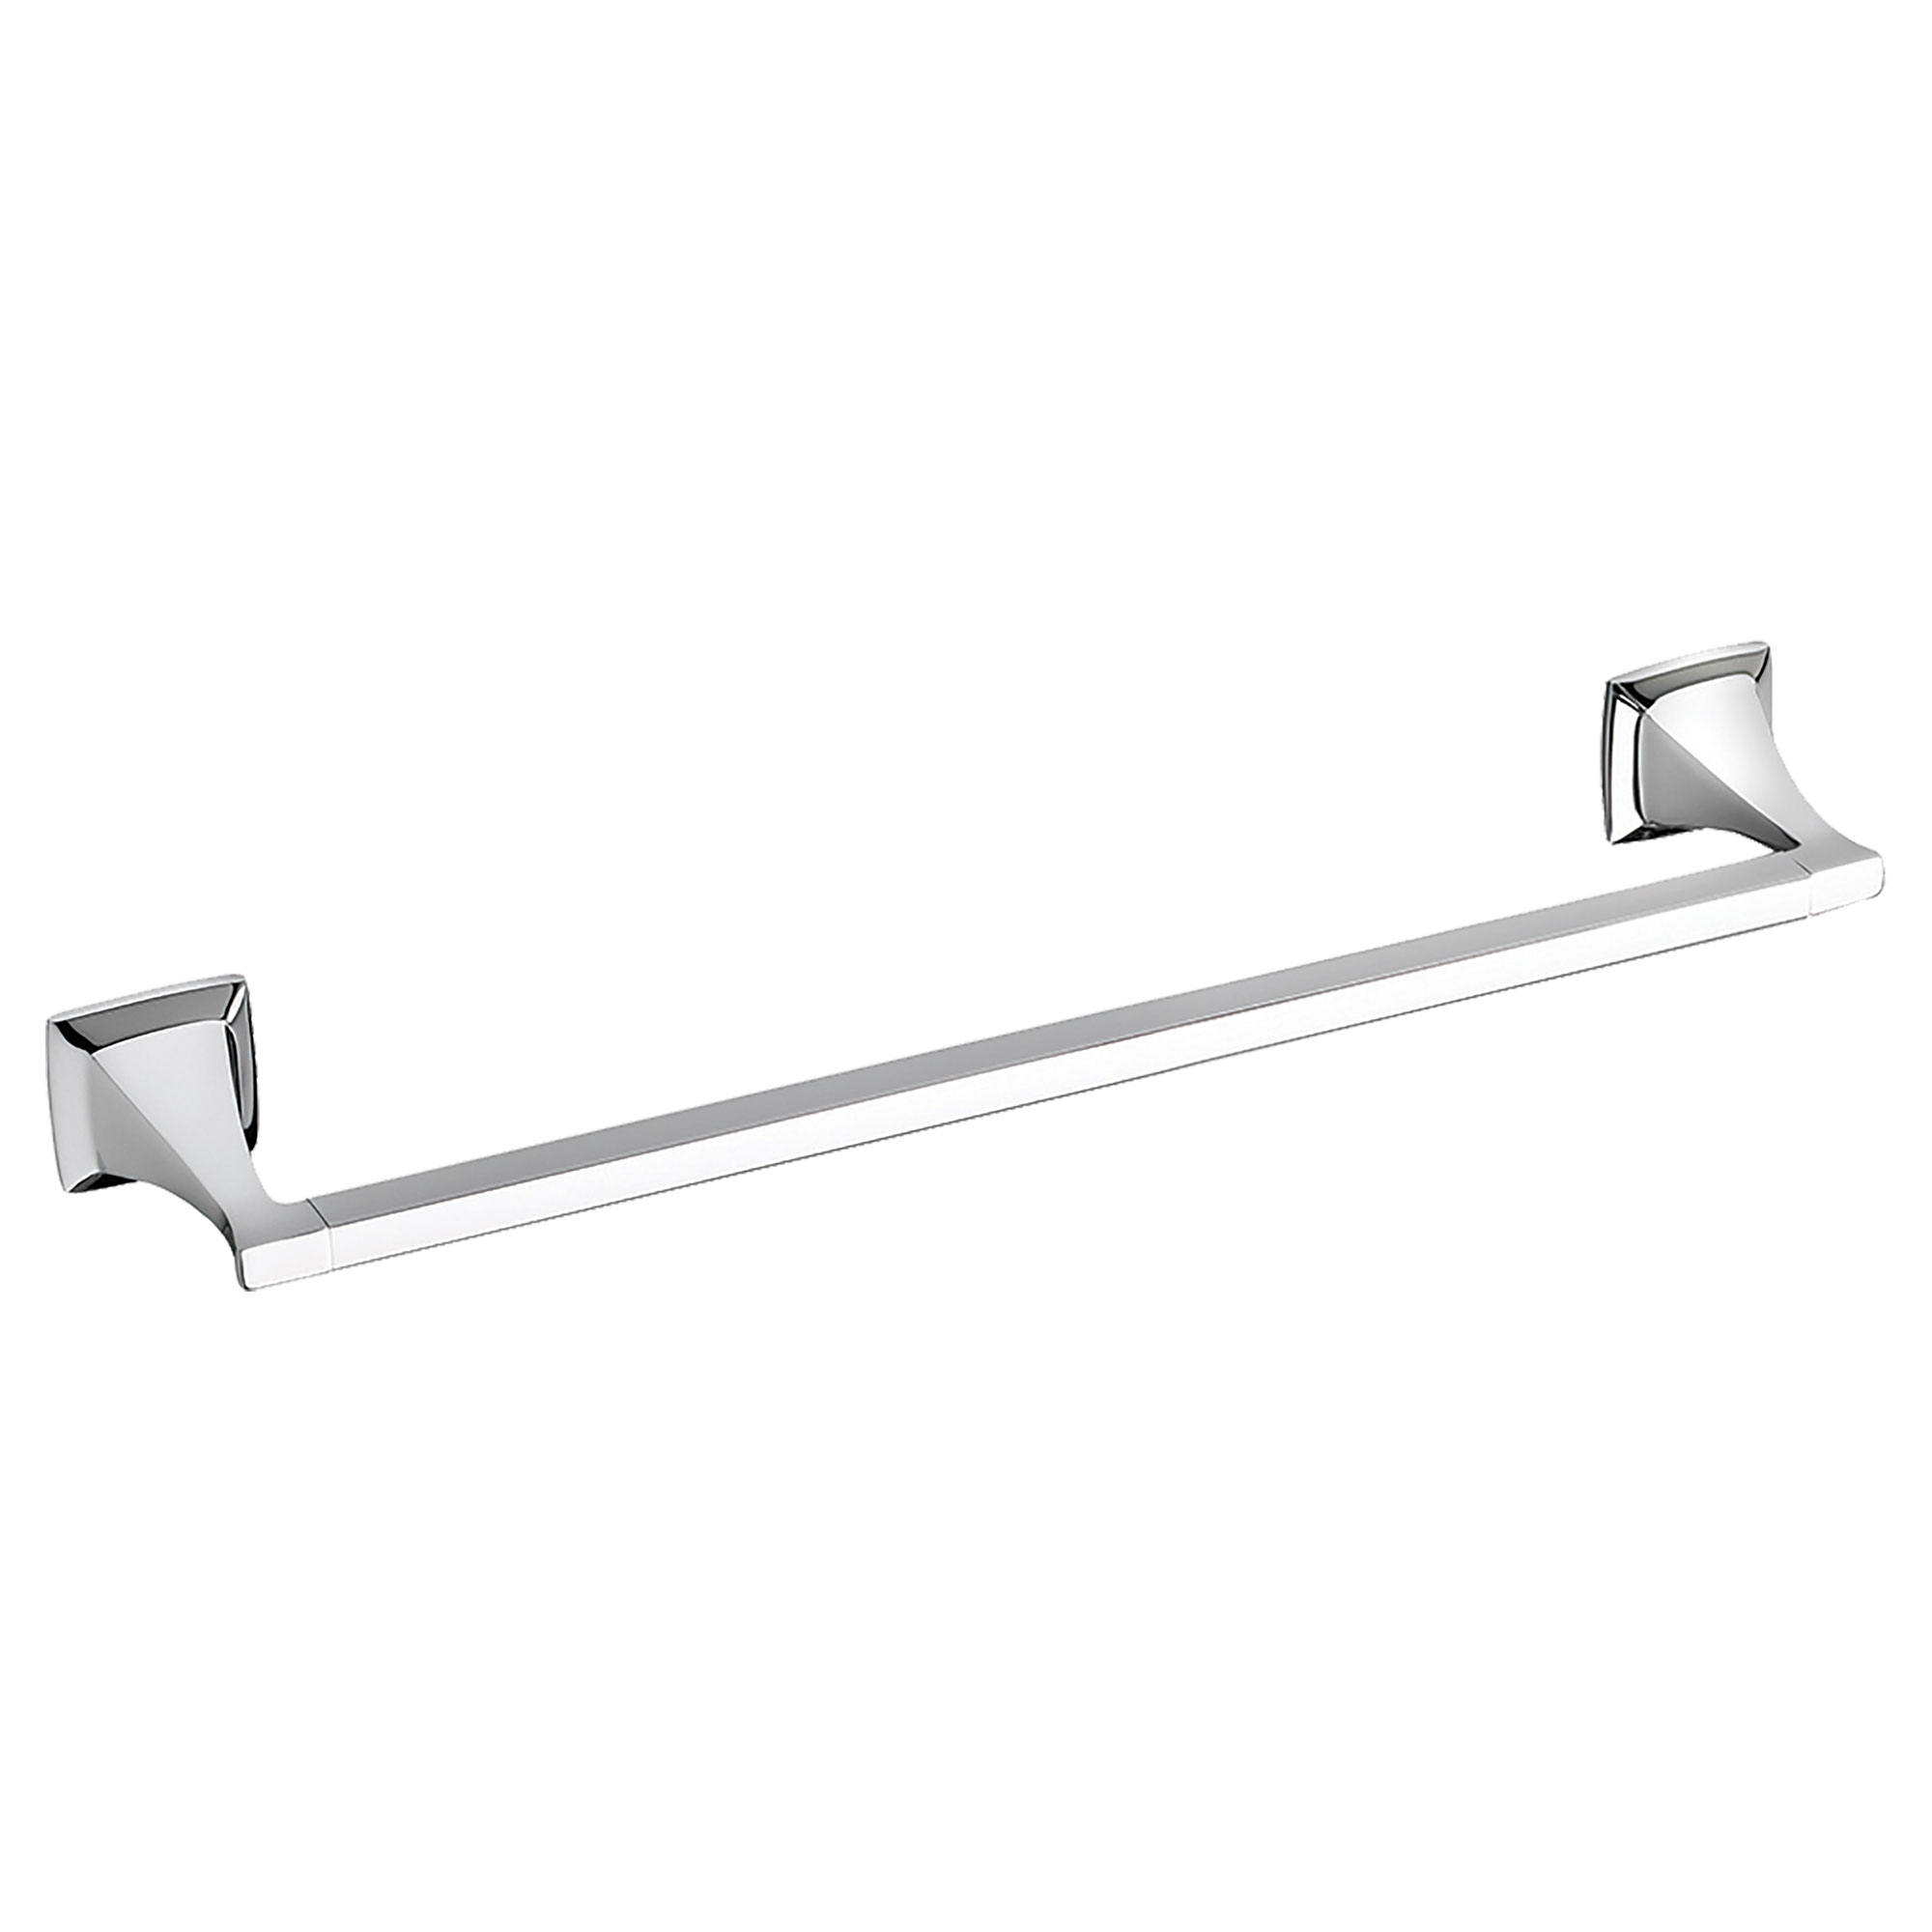 Keefe 18-inch Towel Bar - Projects Model